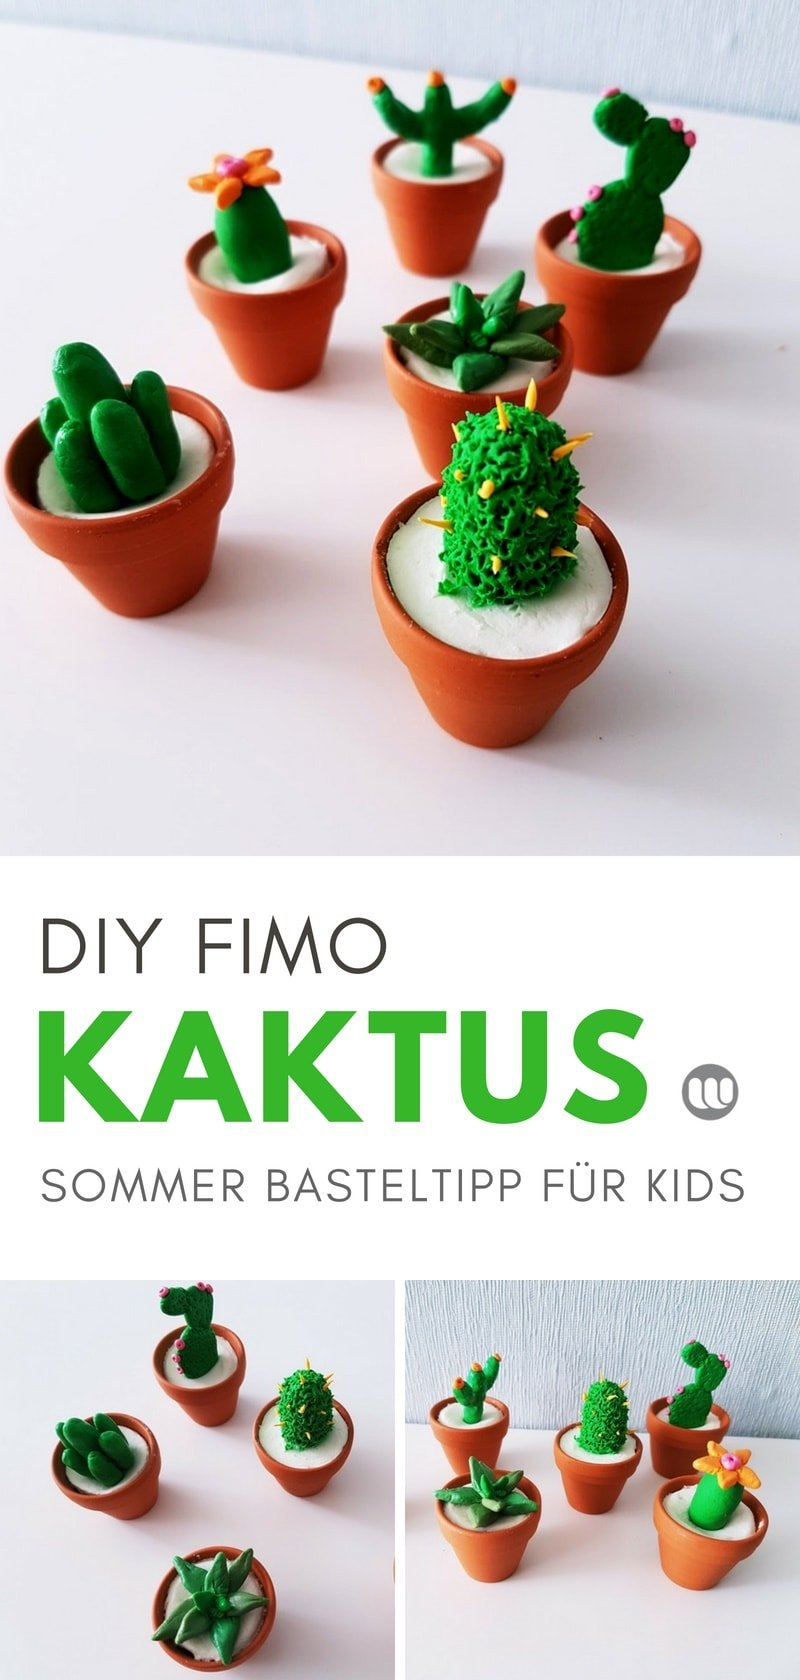 sommer basteltipp diy mini kaktus deko aus modelliermasse. Black Bedroom Furniture Sets. Home Design Ideas